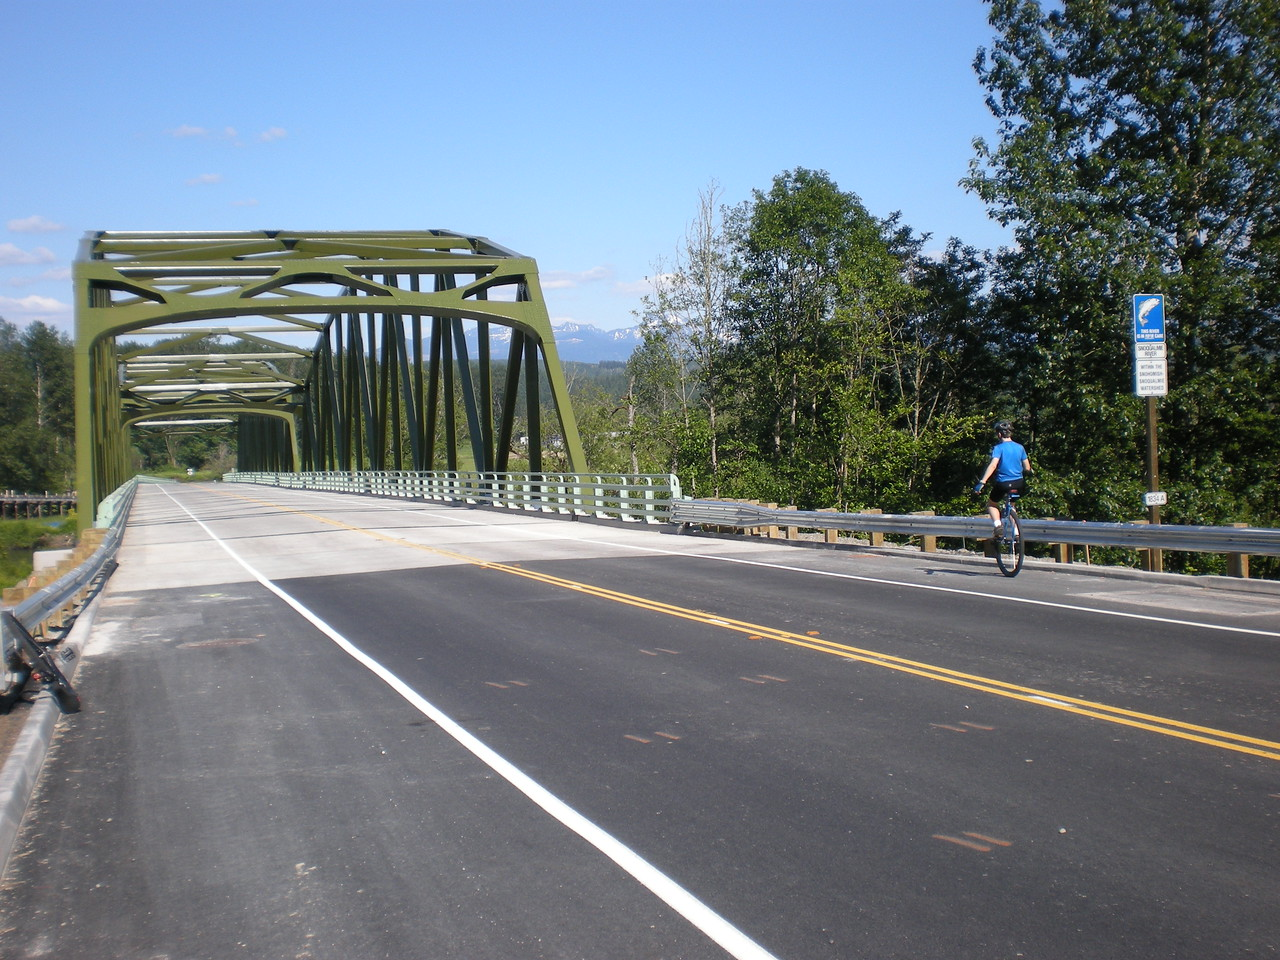 2008:  Miles, making the inaugural Unicycle Crossing of the brand new bridge over the Snoqualmie River outside Carnation. Jeff S and I tried to christen this bridge a few weeks earlier when it was in place but still closed. It was in the midst of being painted, and the workers wouldn't let us cross. See the Jeff RTL Qualifying Ride album for pics on that.  Anyway, I was glad that Miles was able to make First Crossing. Special add to the day.